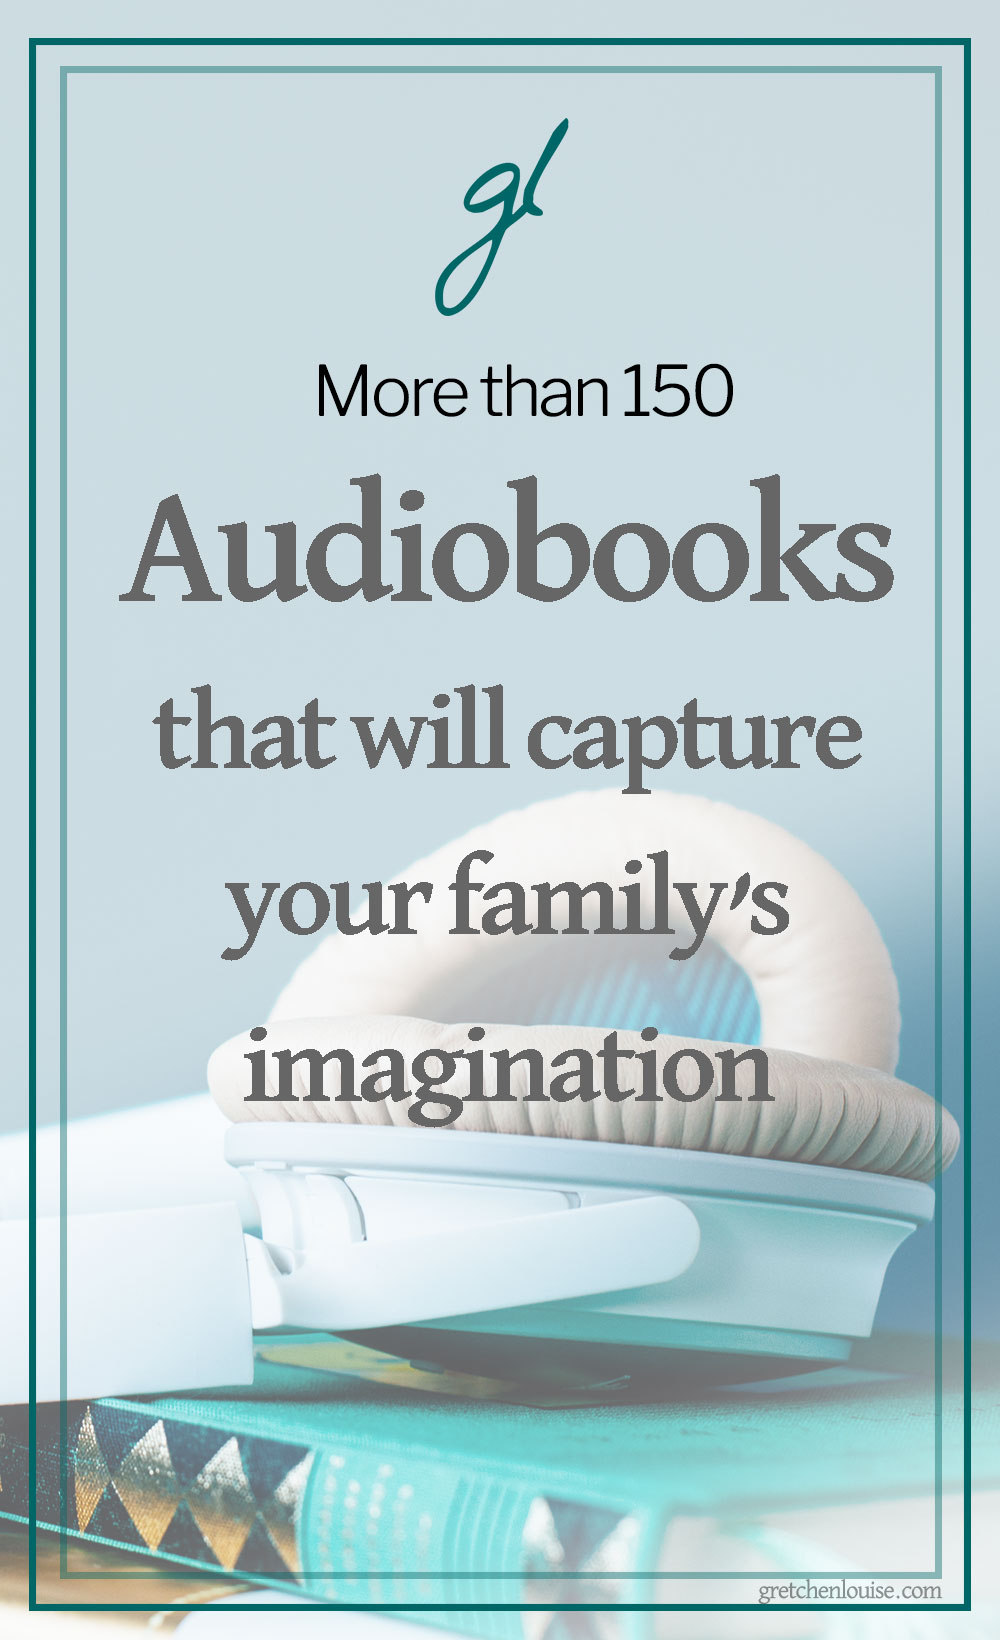 Audiobooks are so much more than just wholesome entertainment.Audiobooks can inspire the imagination, train vocabulary, instill values, teach character traits, and introduce classic literature. Audiobooks give Mom and Dad's voices a break from reading aloud (and literally save the day when everyone has a cold bug and no voice). And audiobooks can be enjoyed together by the whole family whether folding laundry orgoing on a road trip. via @GretLouise